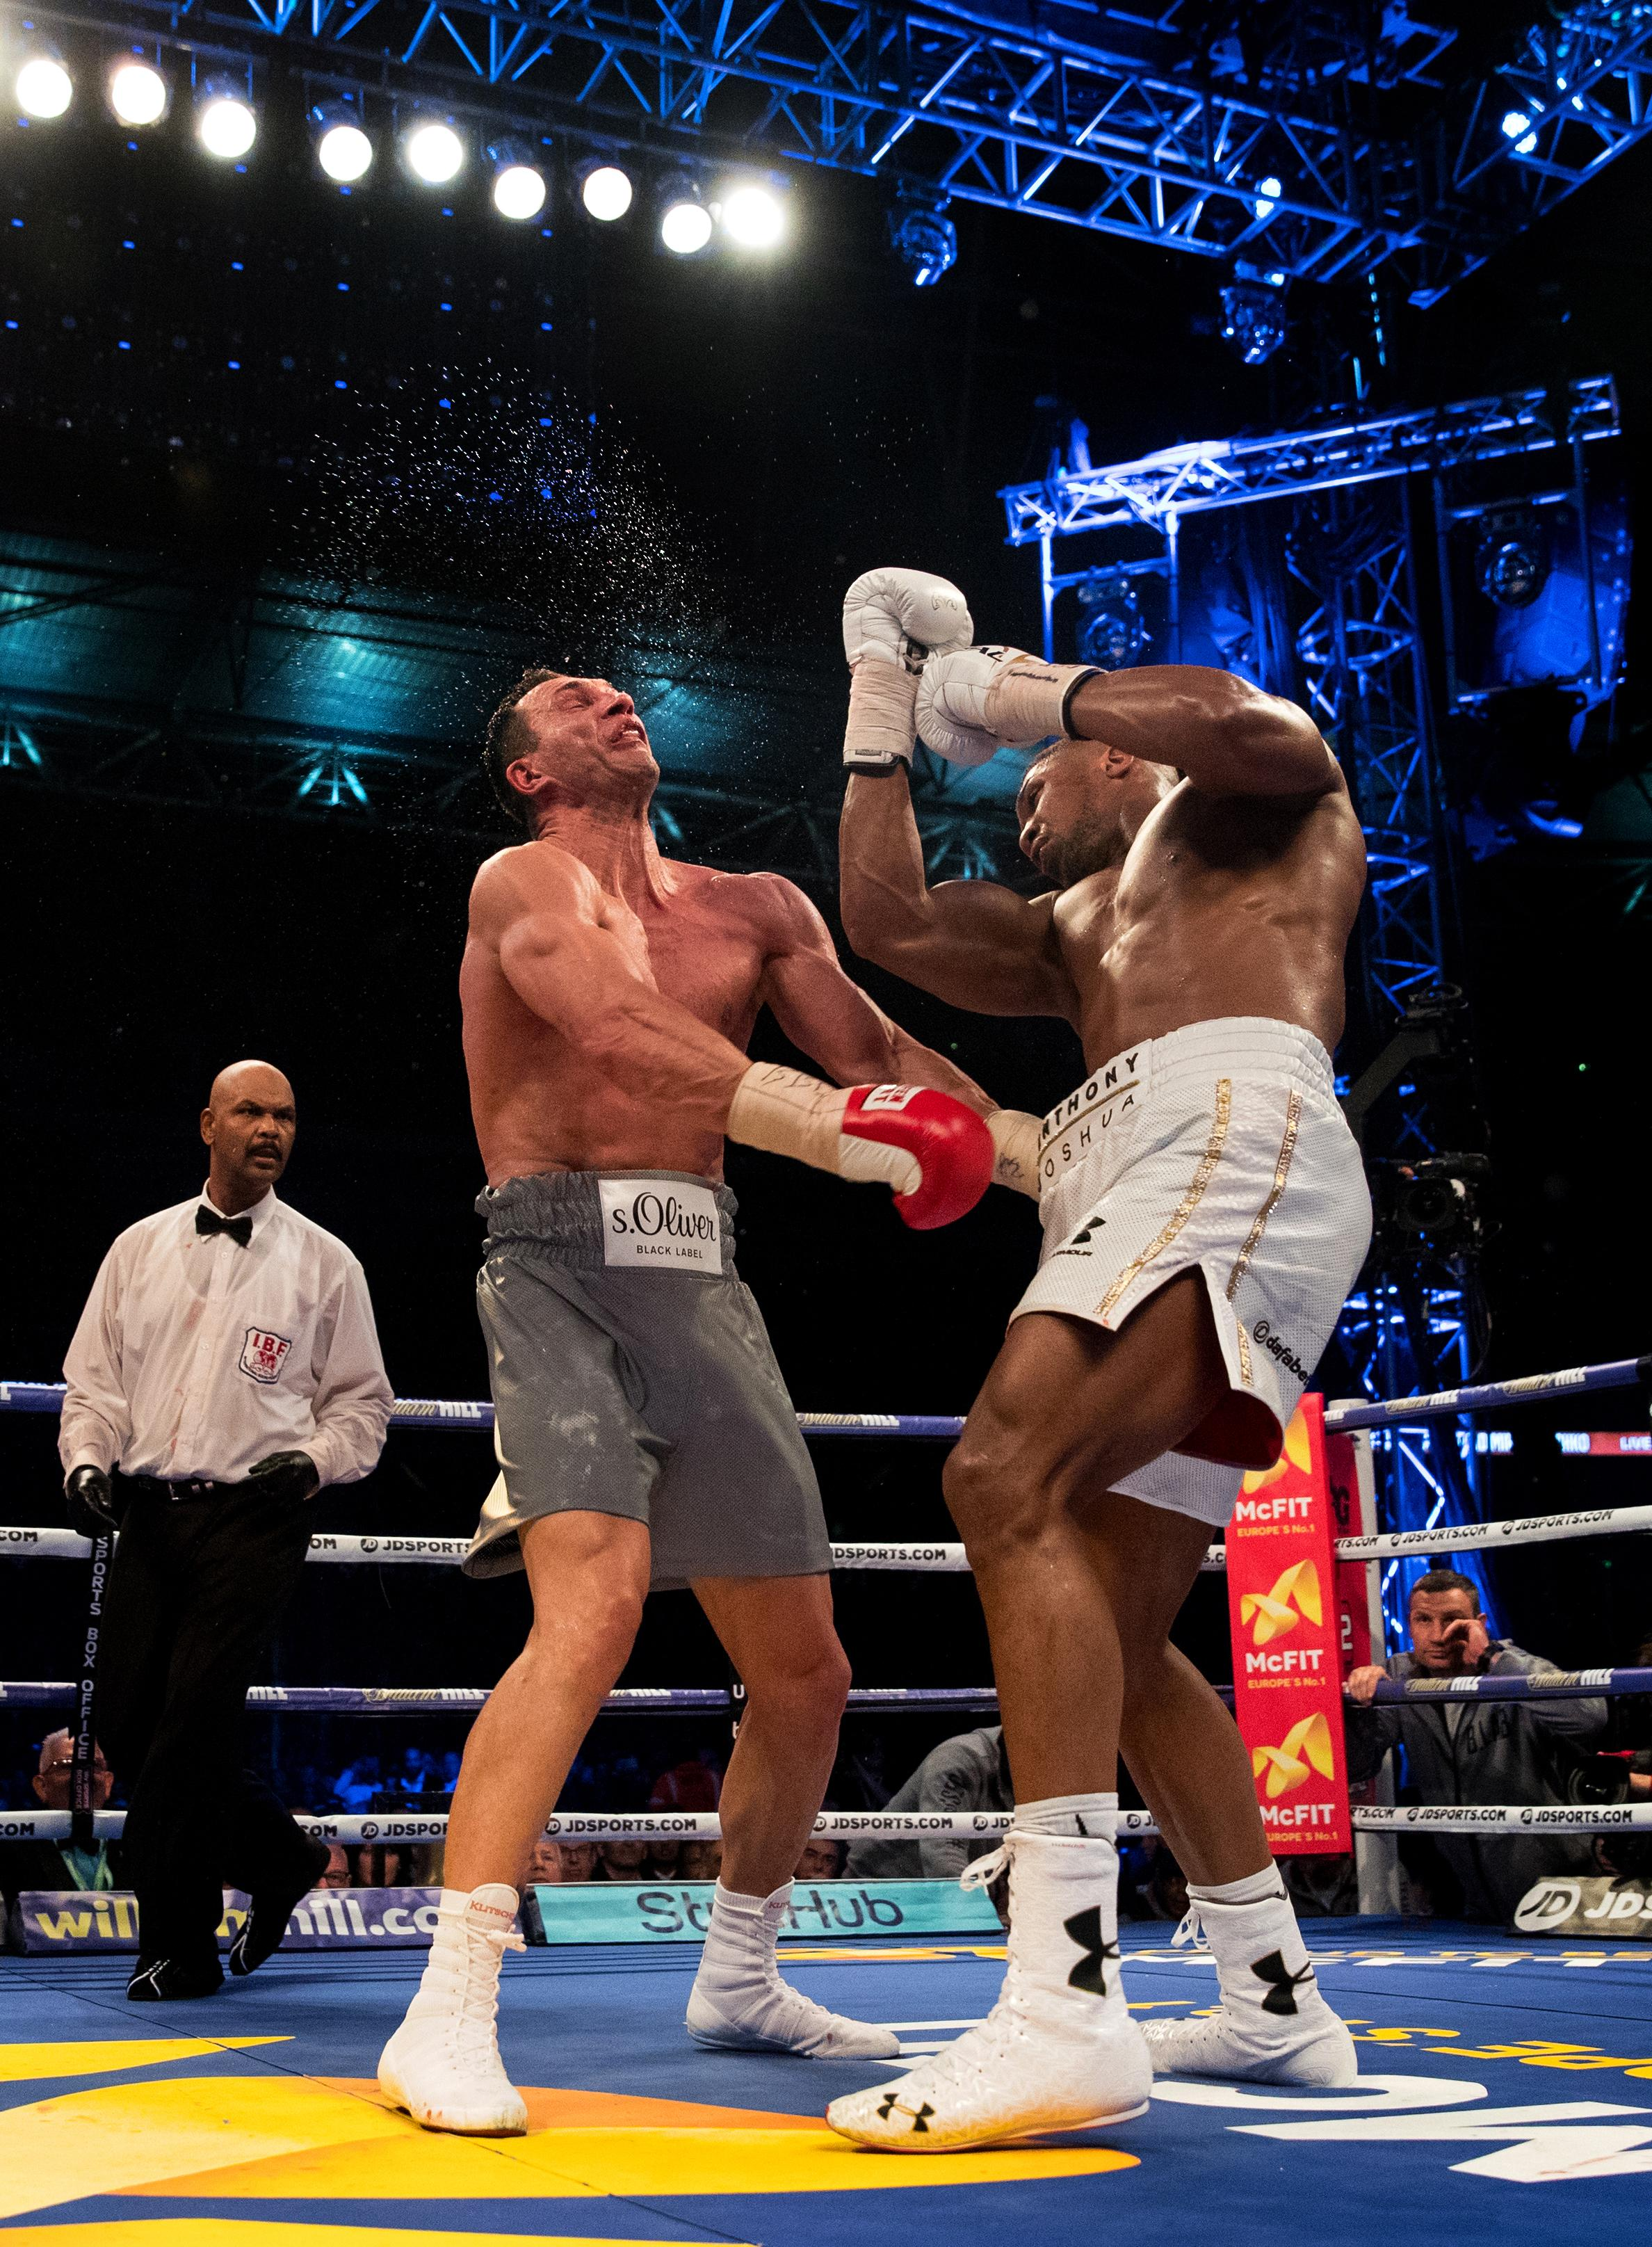 AJ was on top of the world and the heavyweight division after beating Wladimir Klitschko, but that night in 2017 is long behind him now